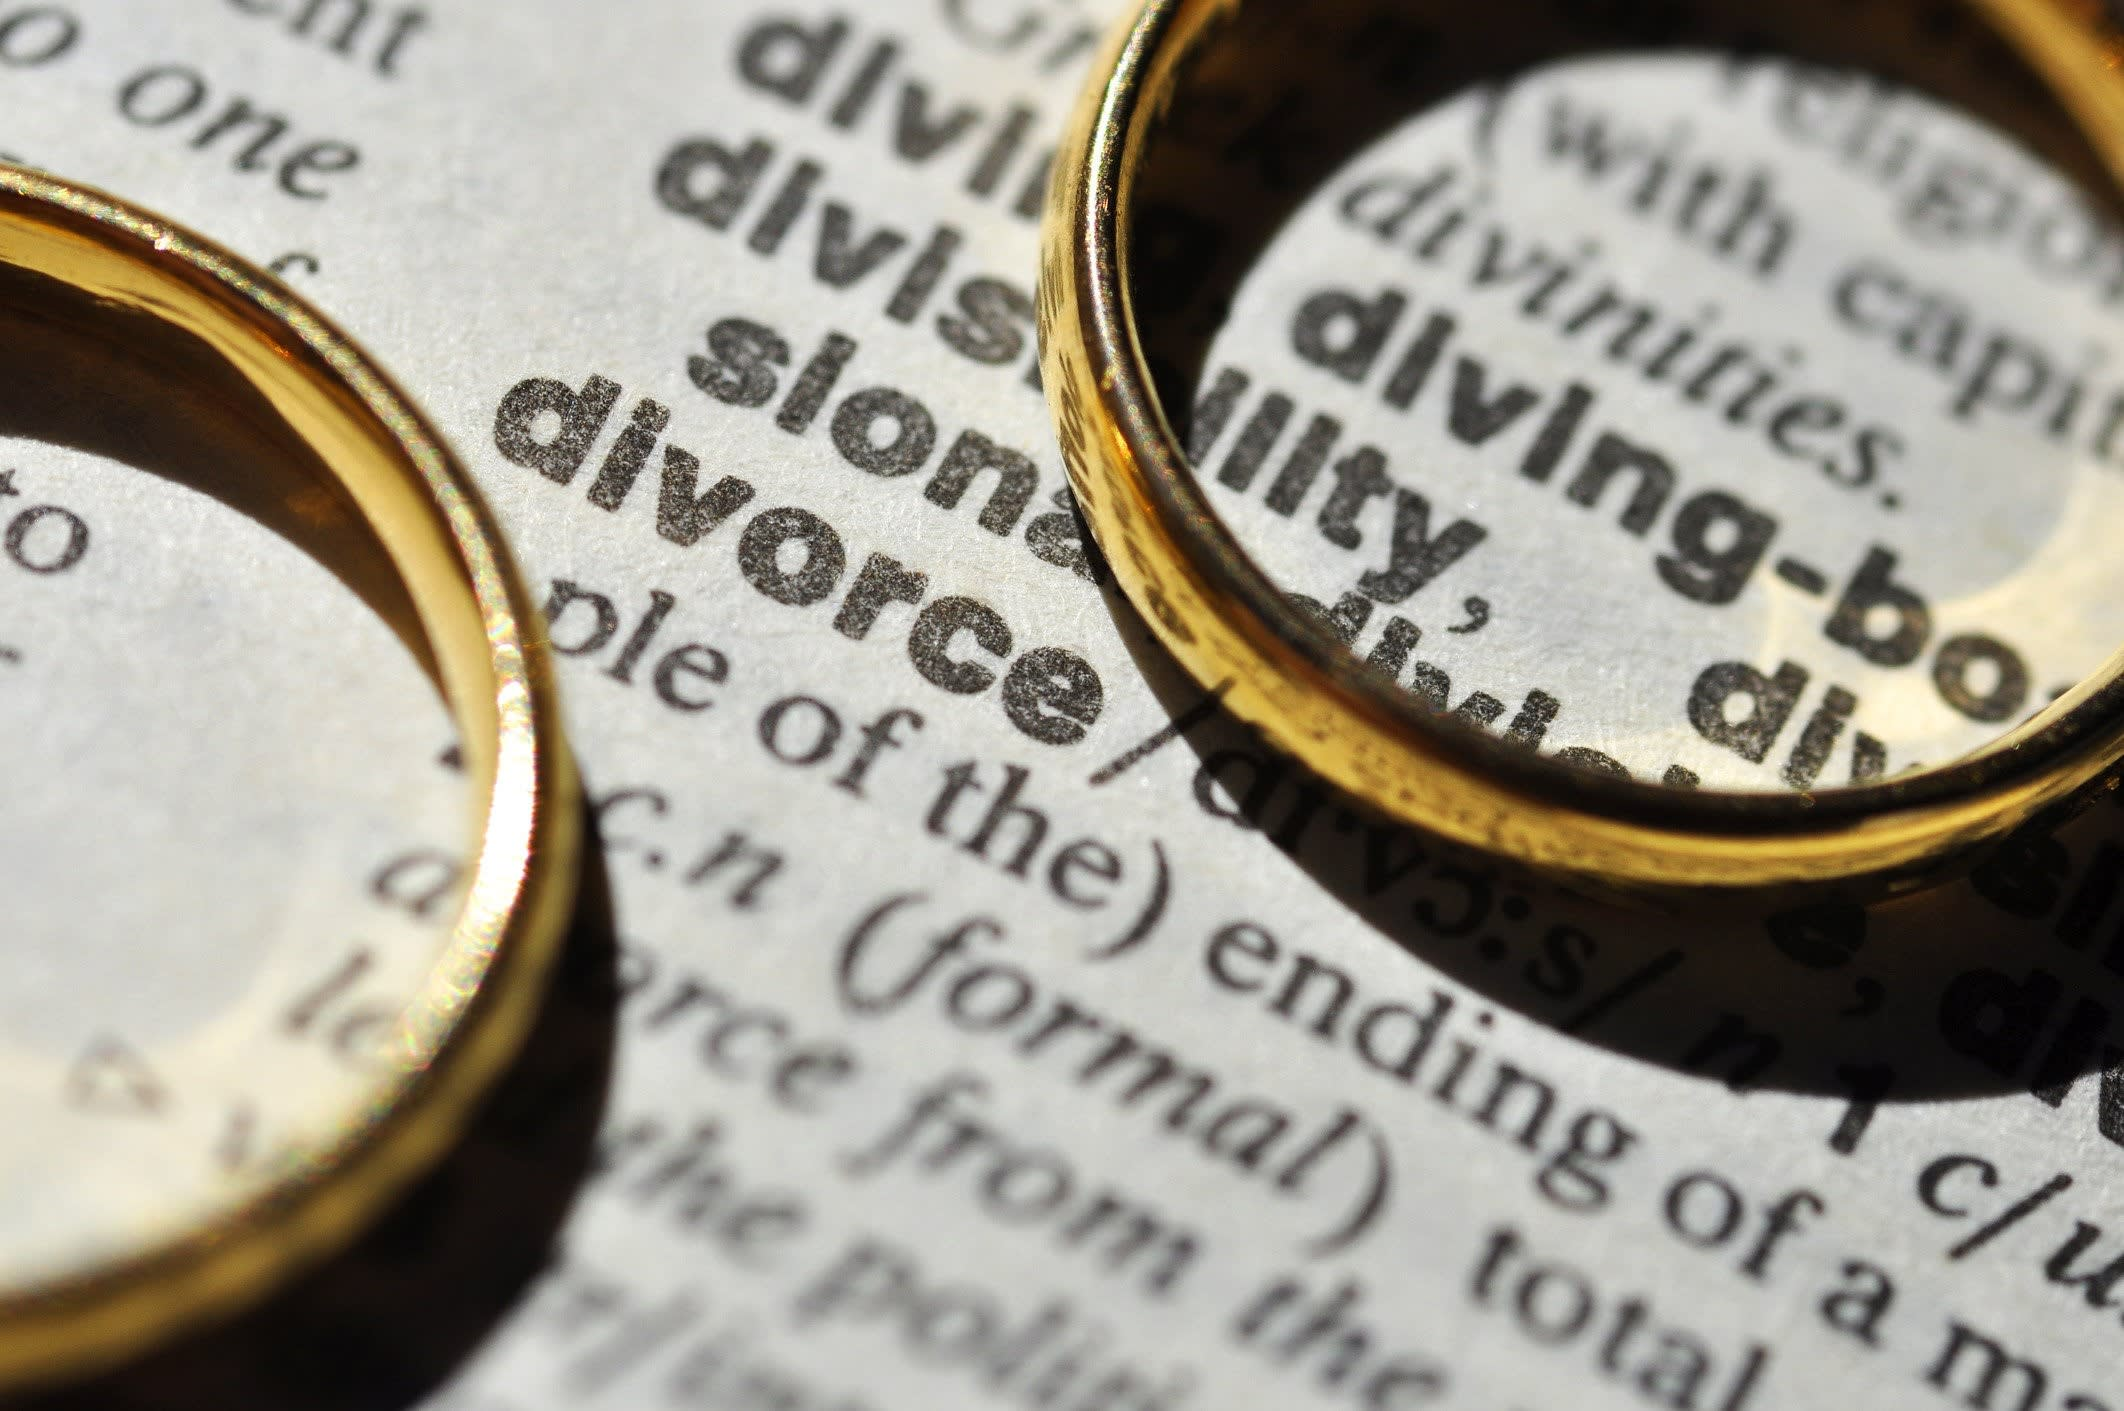 Lords warn new divorce rules could be 'counterproductive'